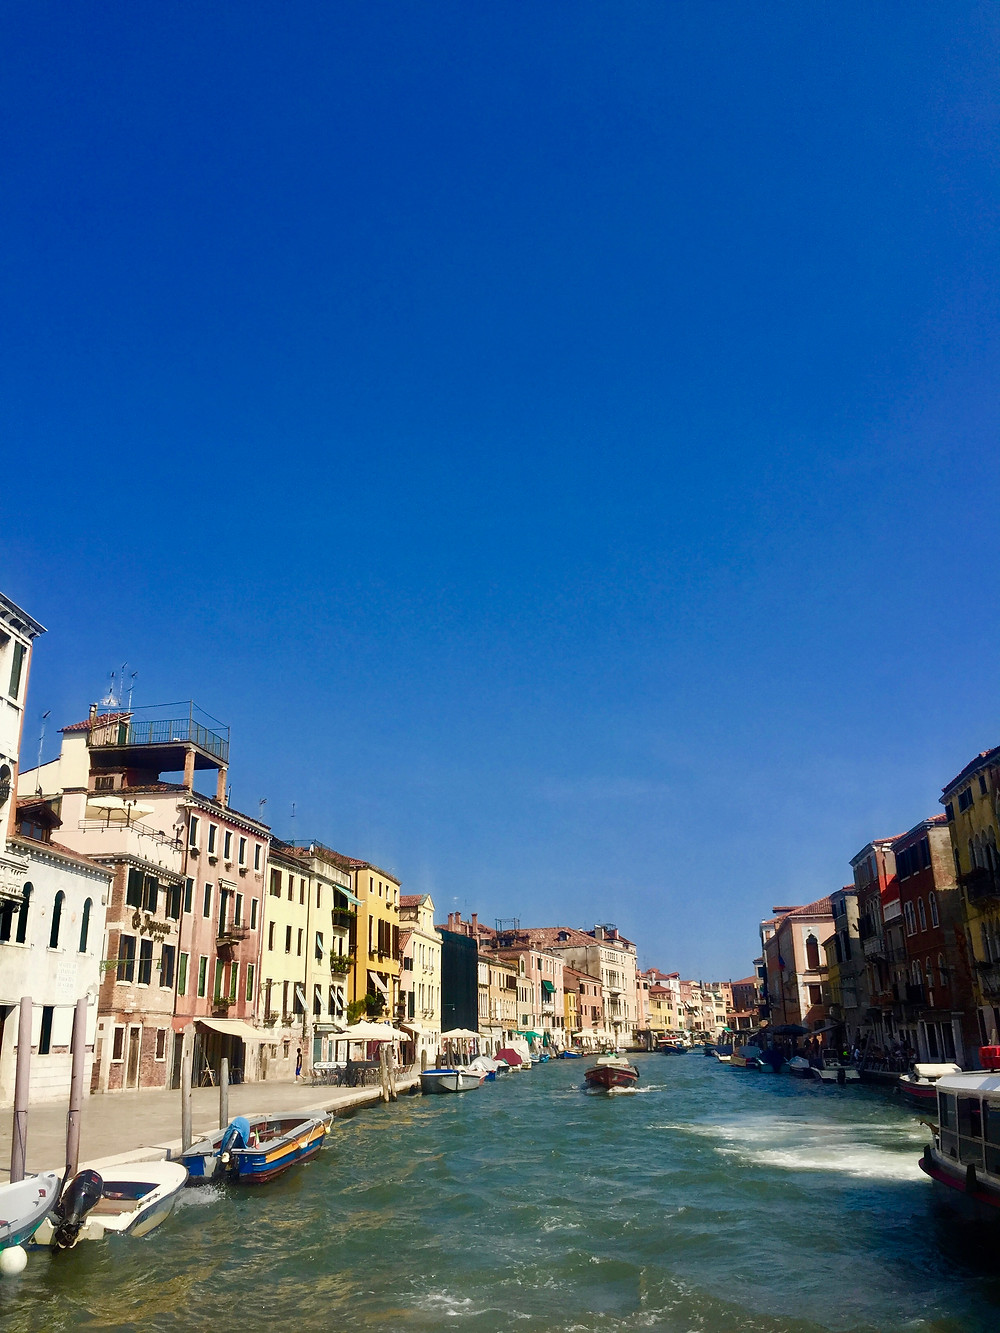 View from boat leaving Venice Italy in the summer on the Grand Canal